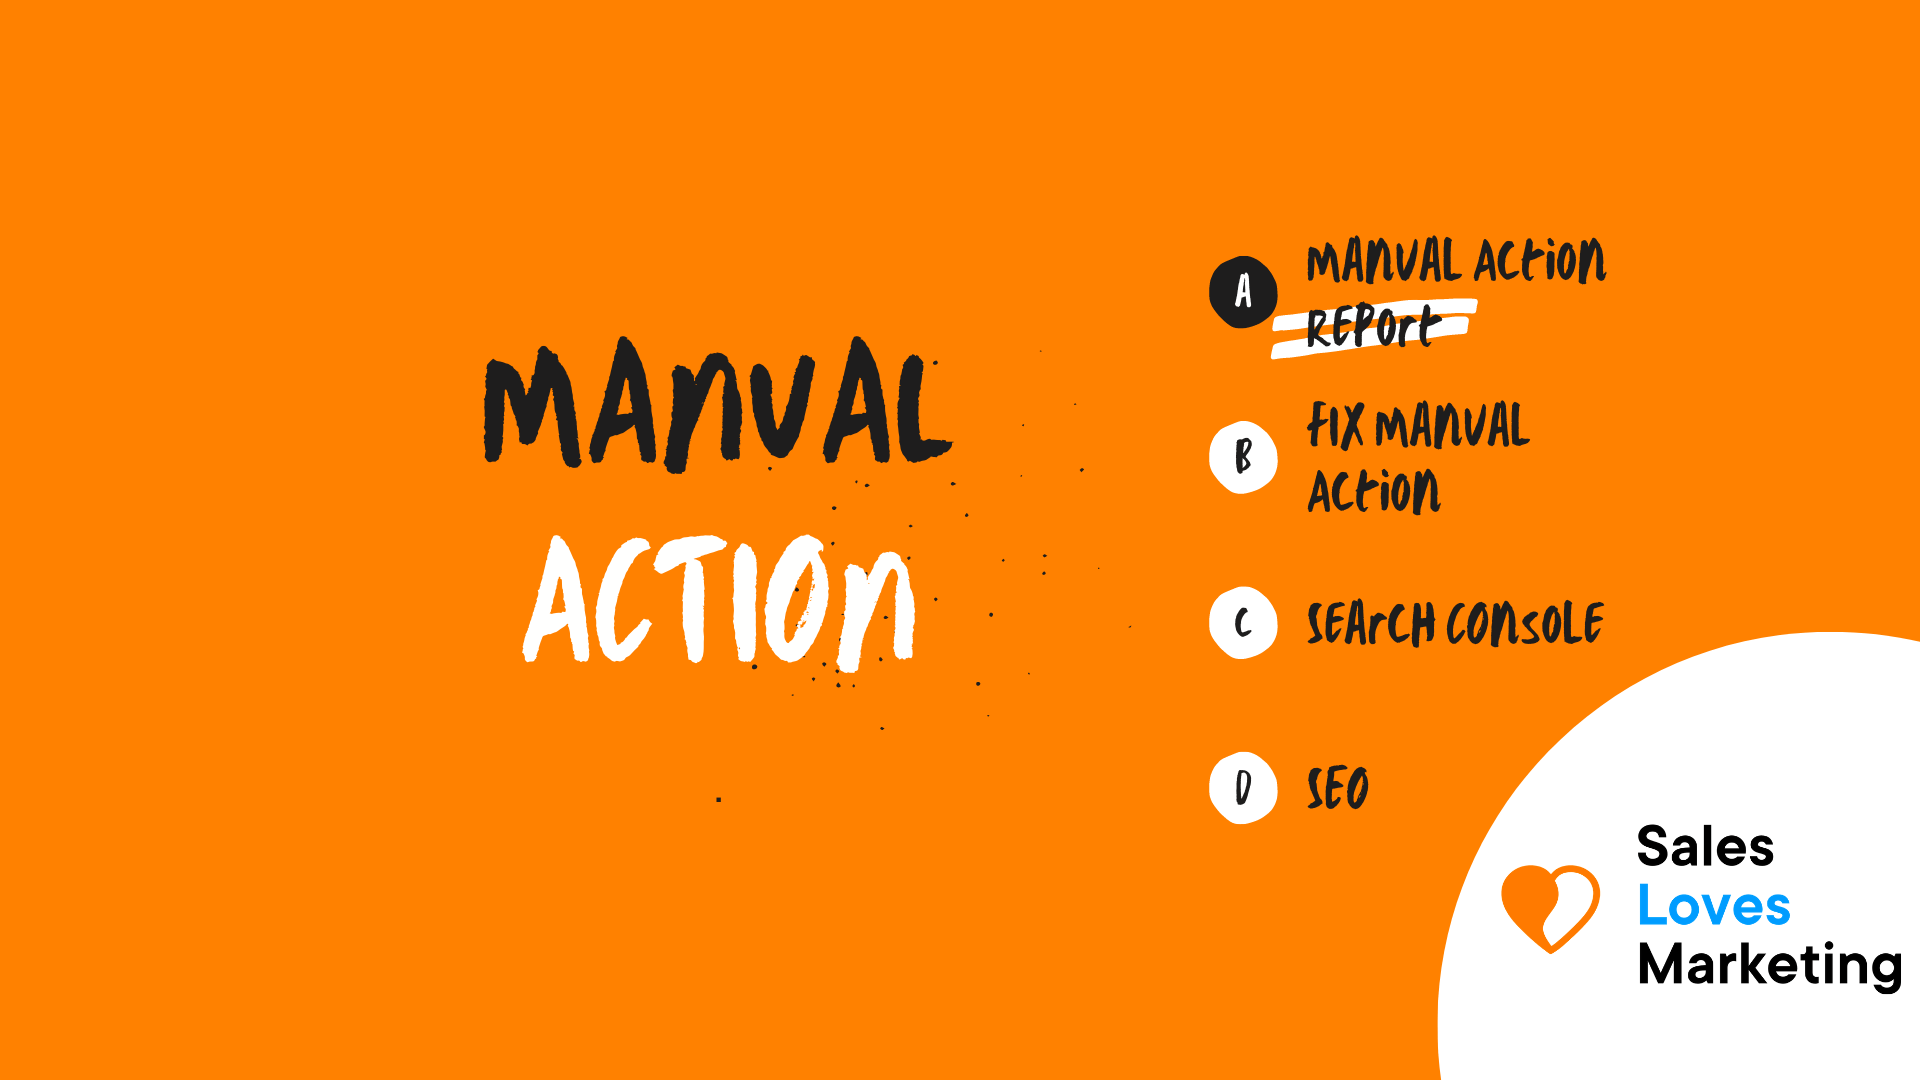 Manual Action